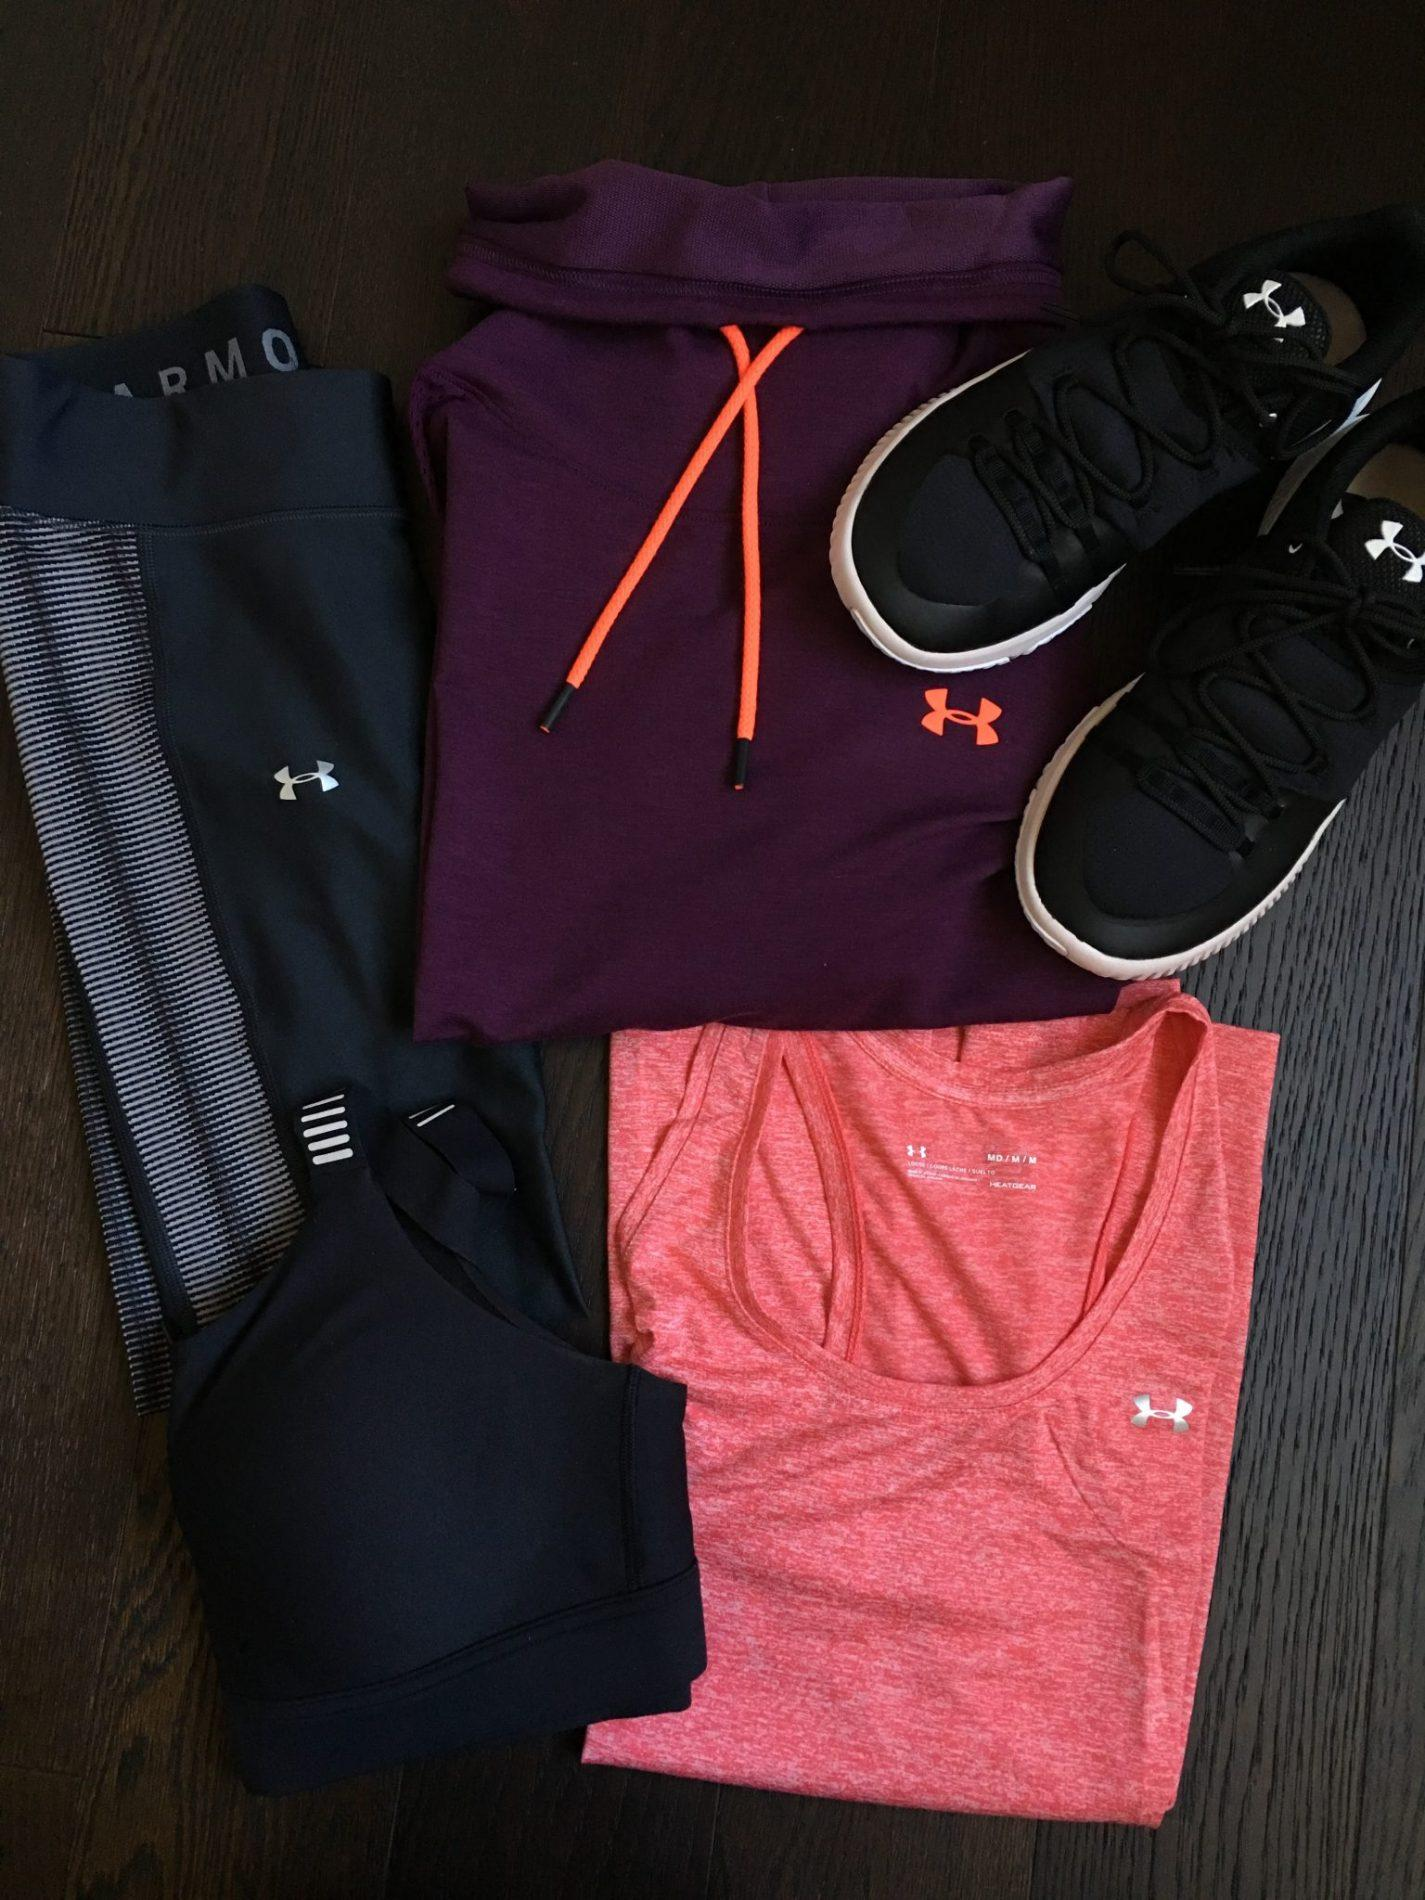 Under Armour ArmourBox Review - April 2018